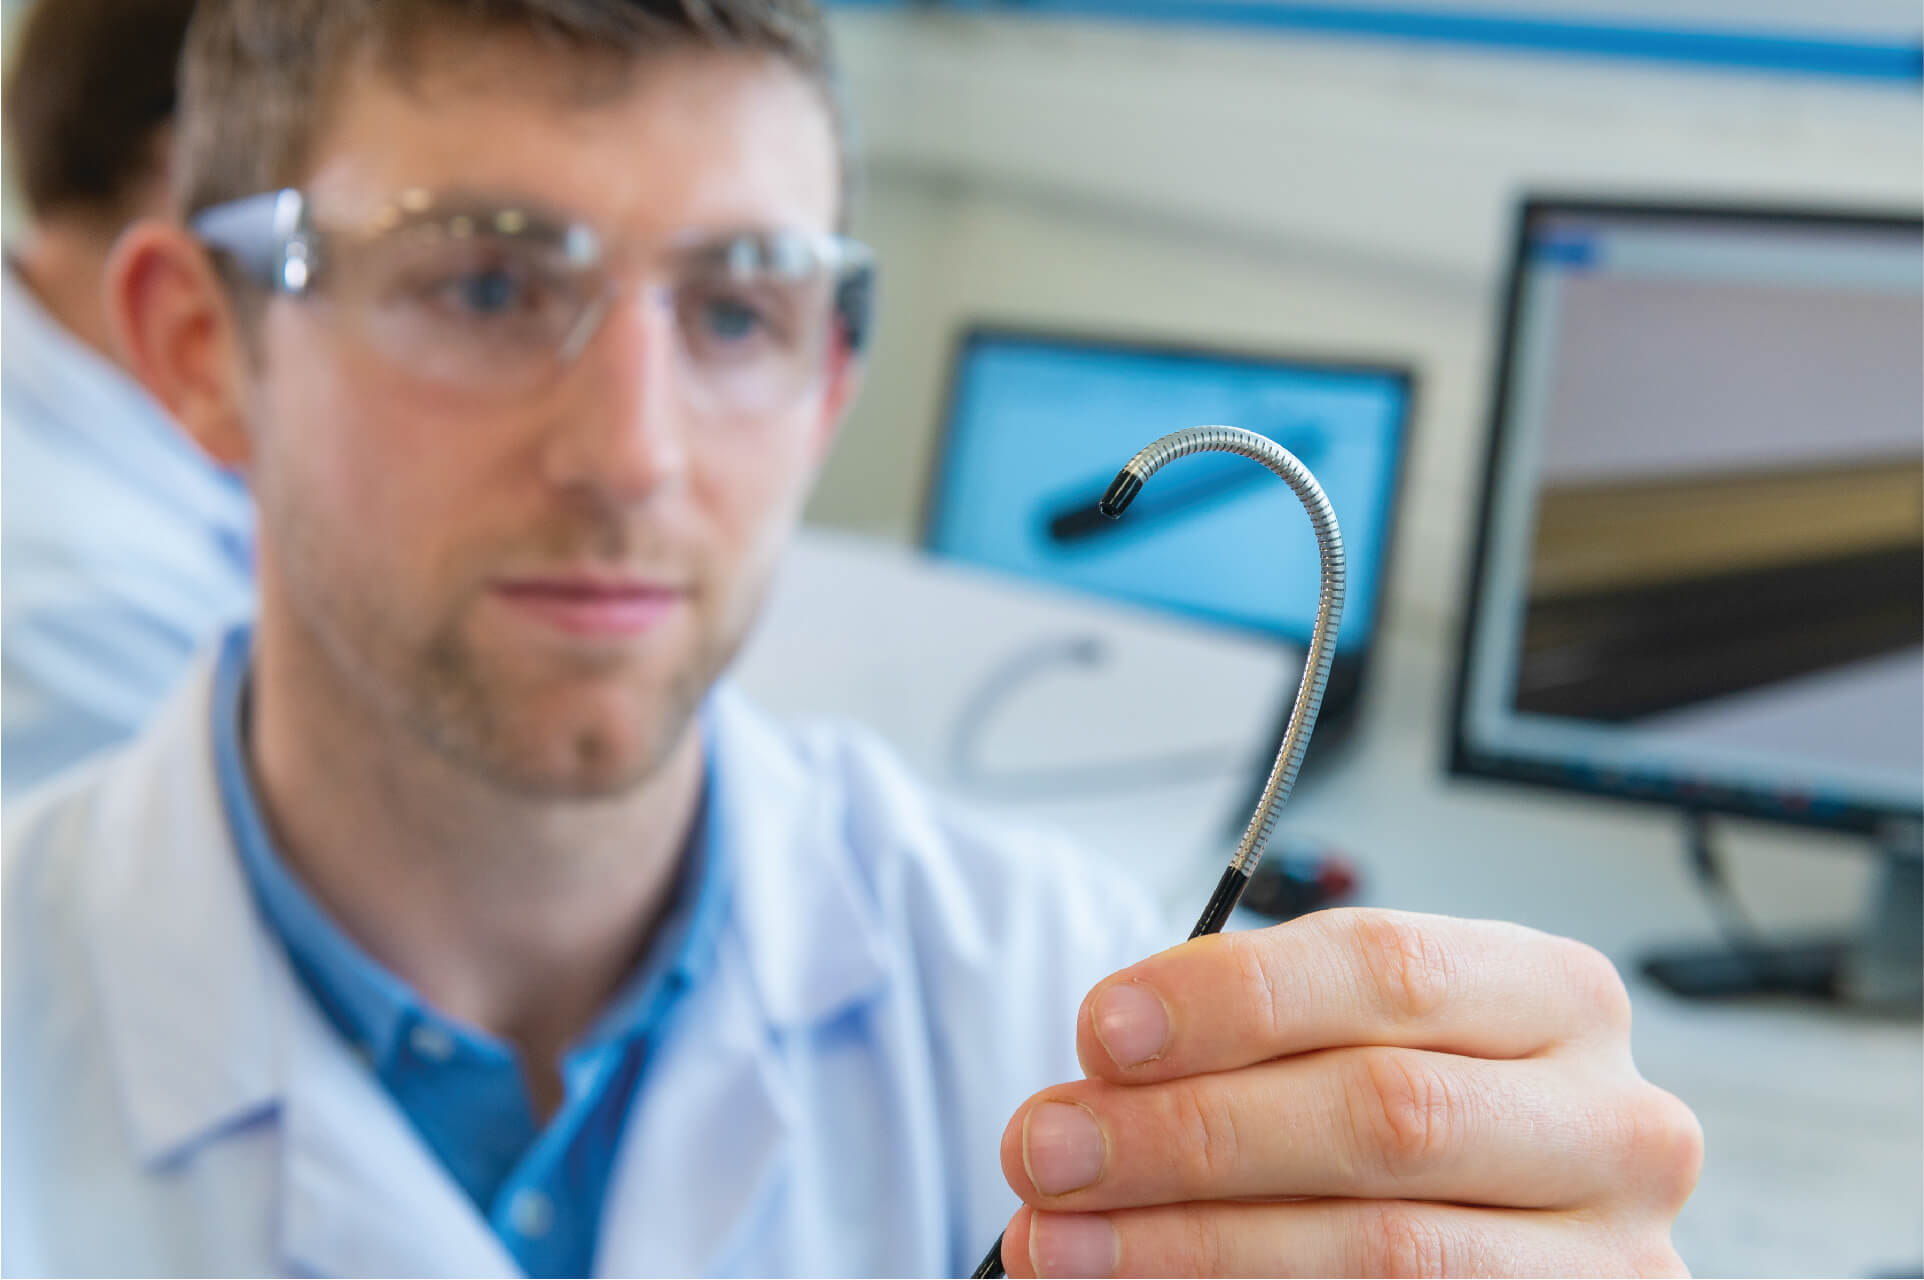 ICS Medical prototyping capabilities utilising their class-leading technology and facilities.